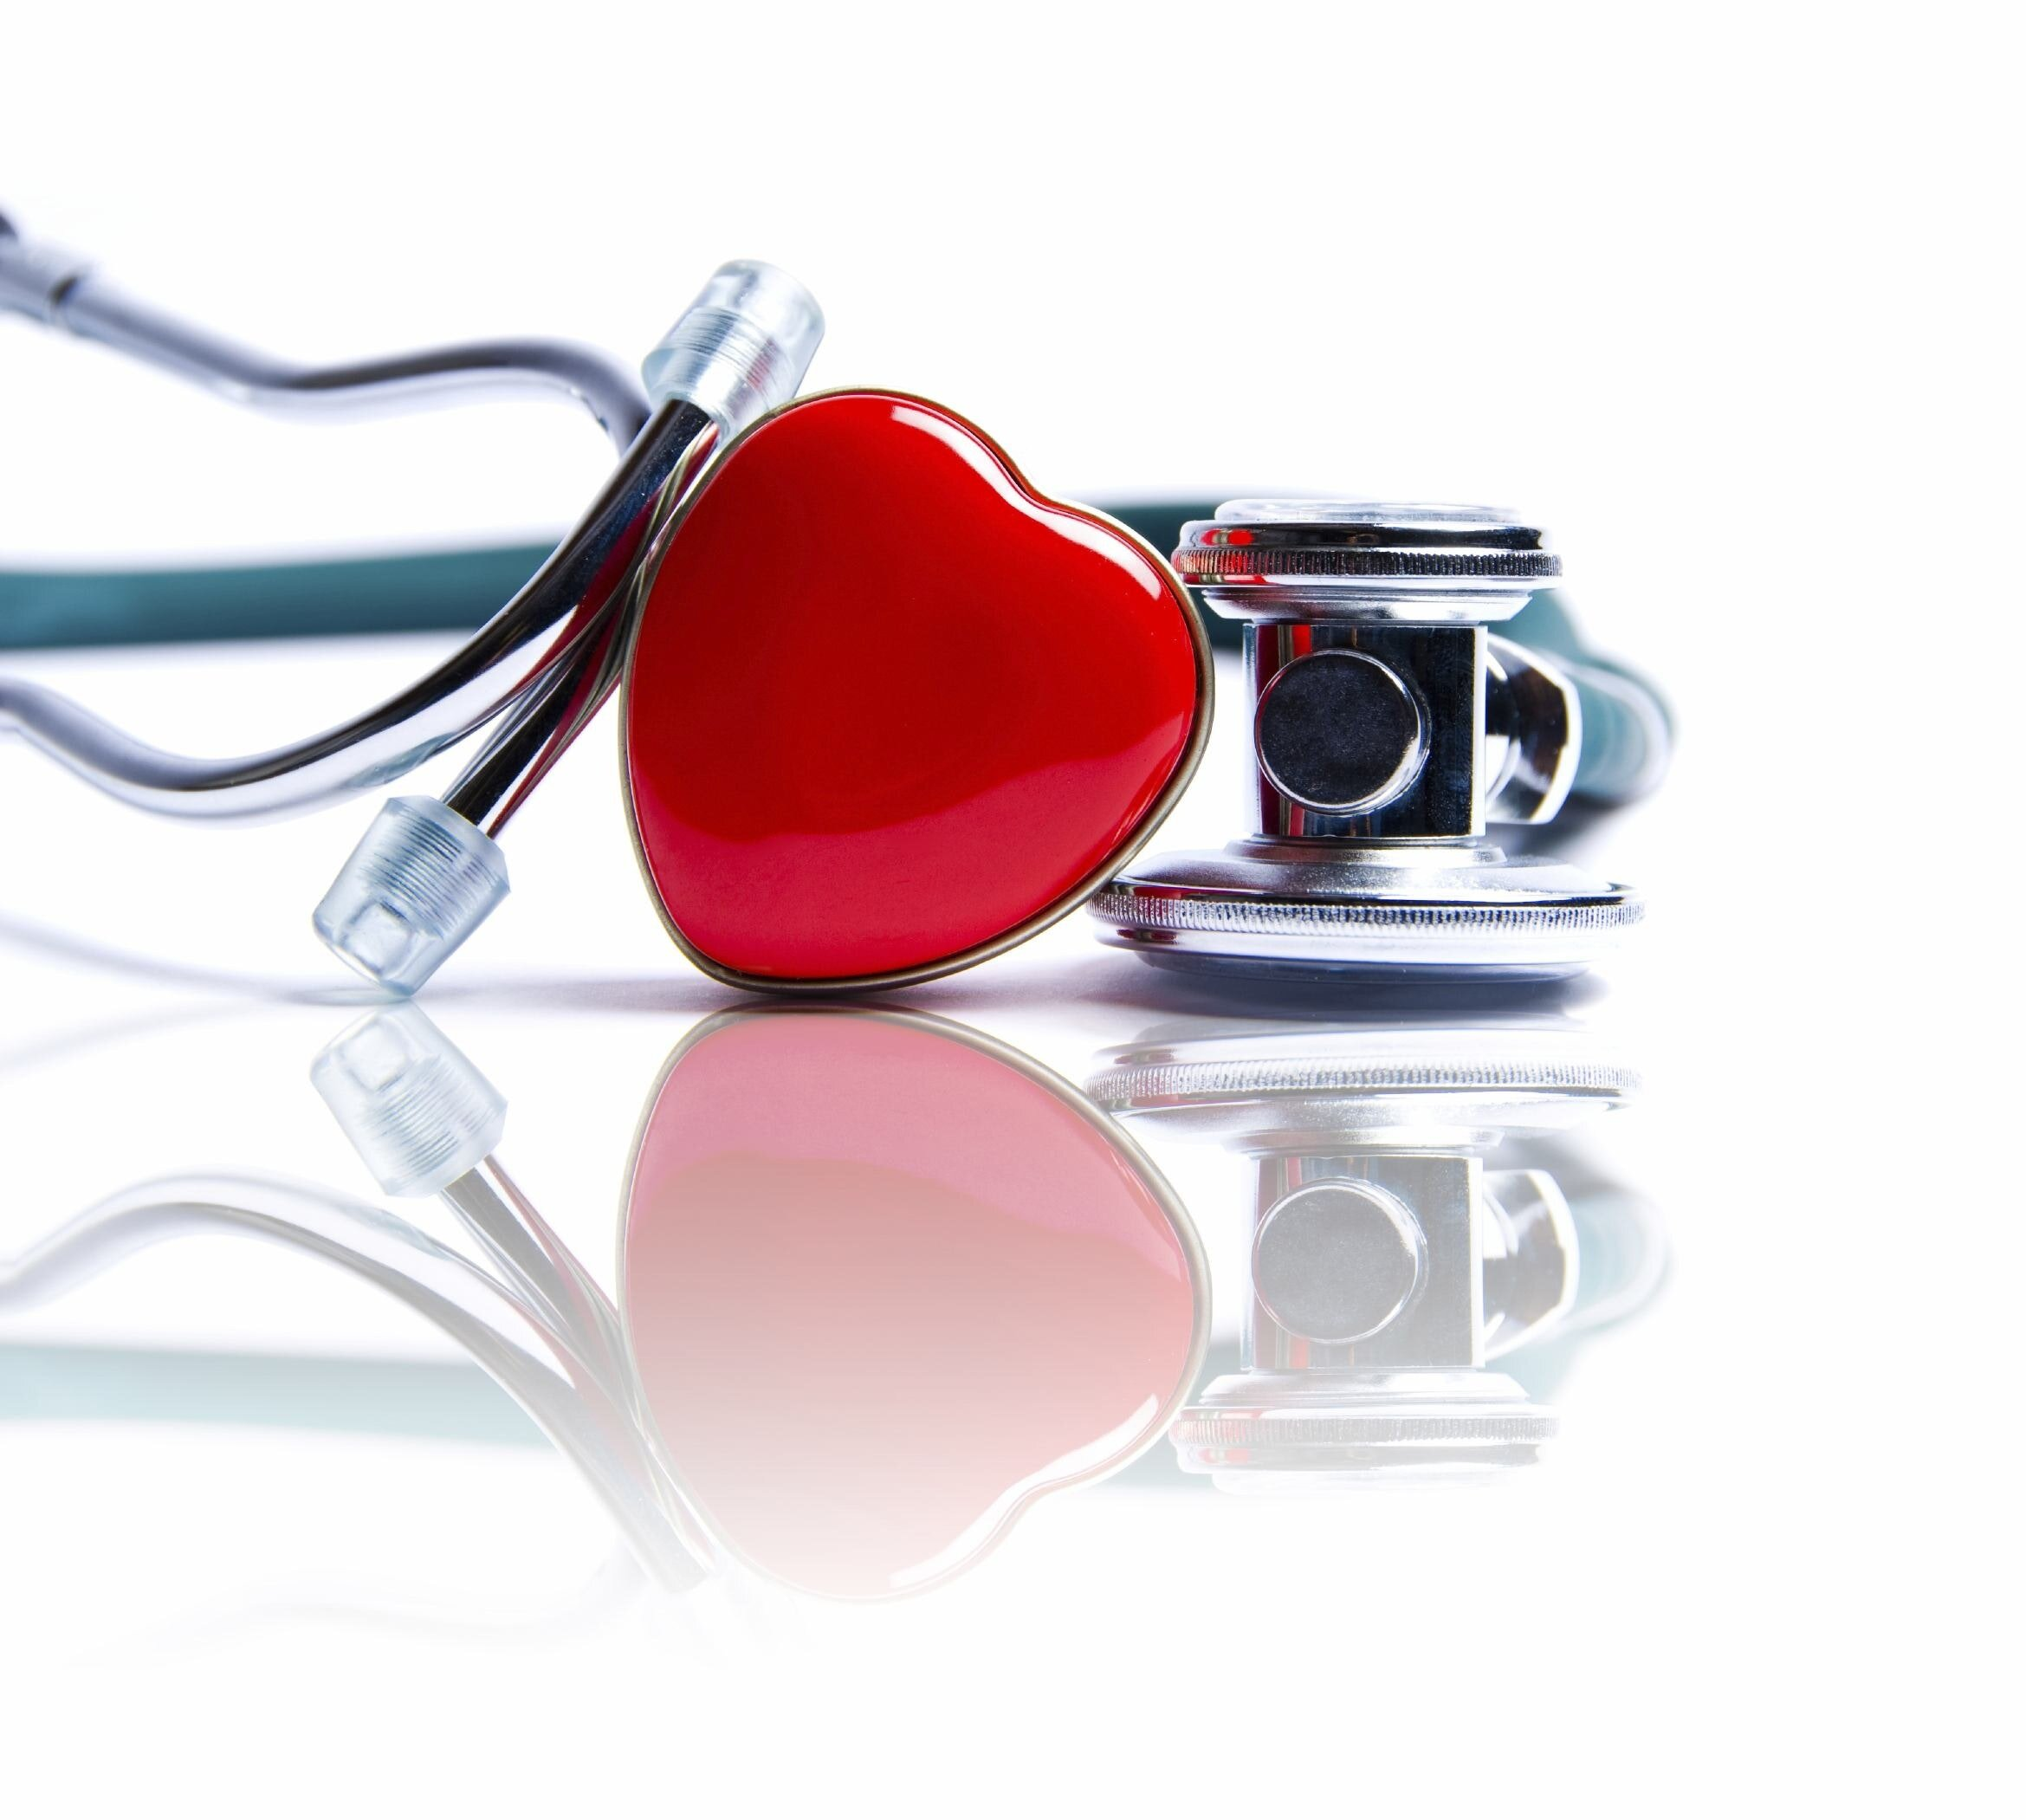 Stethoscopes with Heart Representing Healthcare Industry